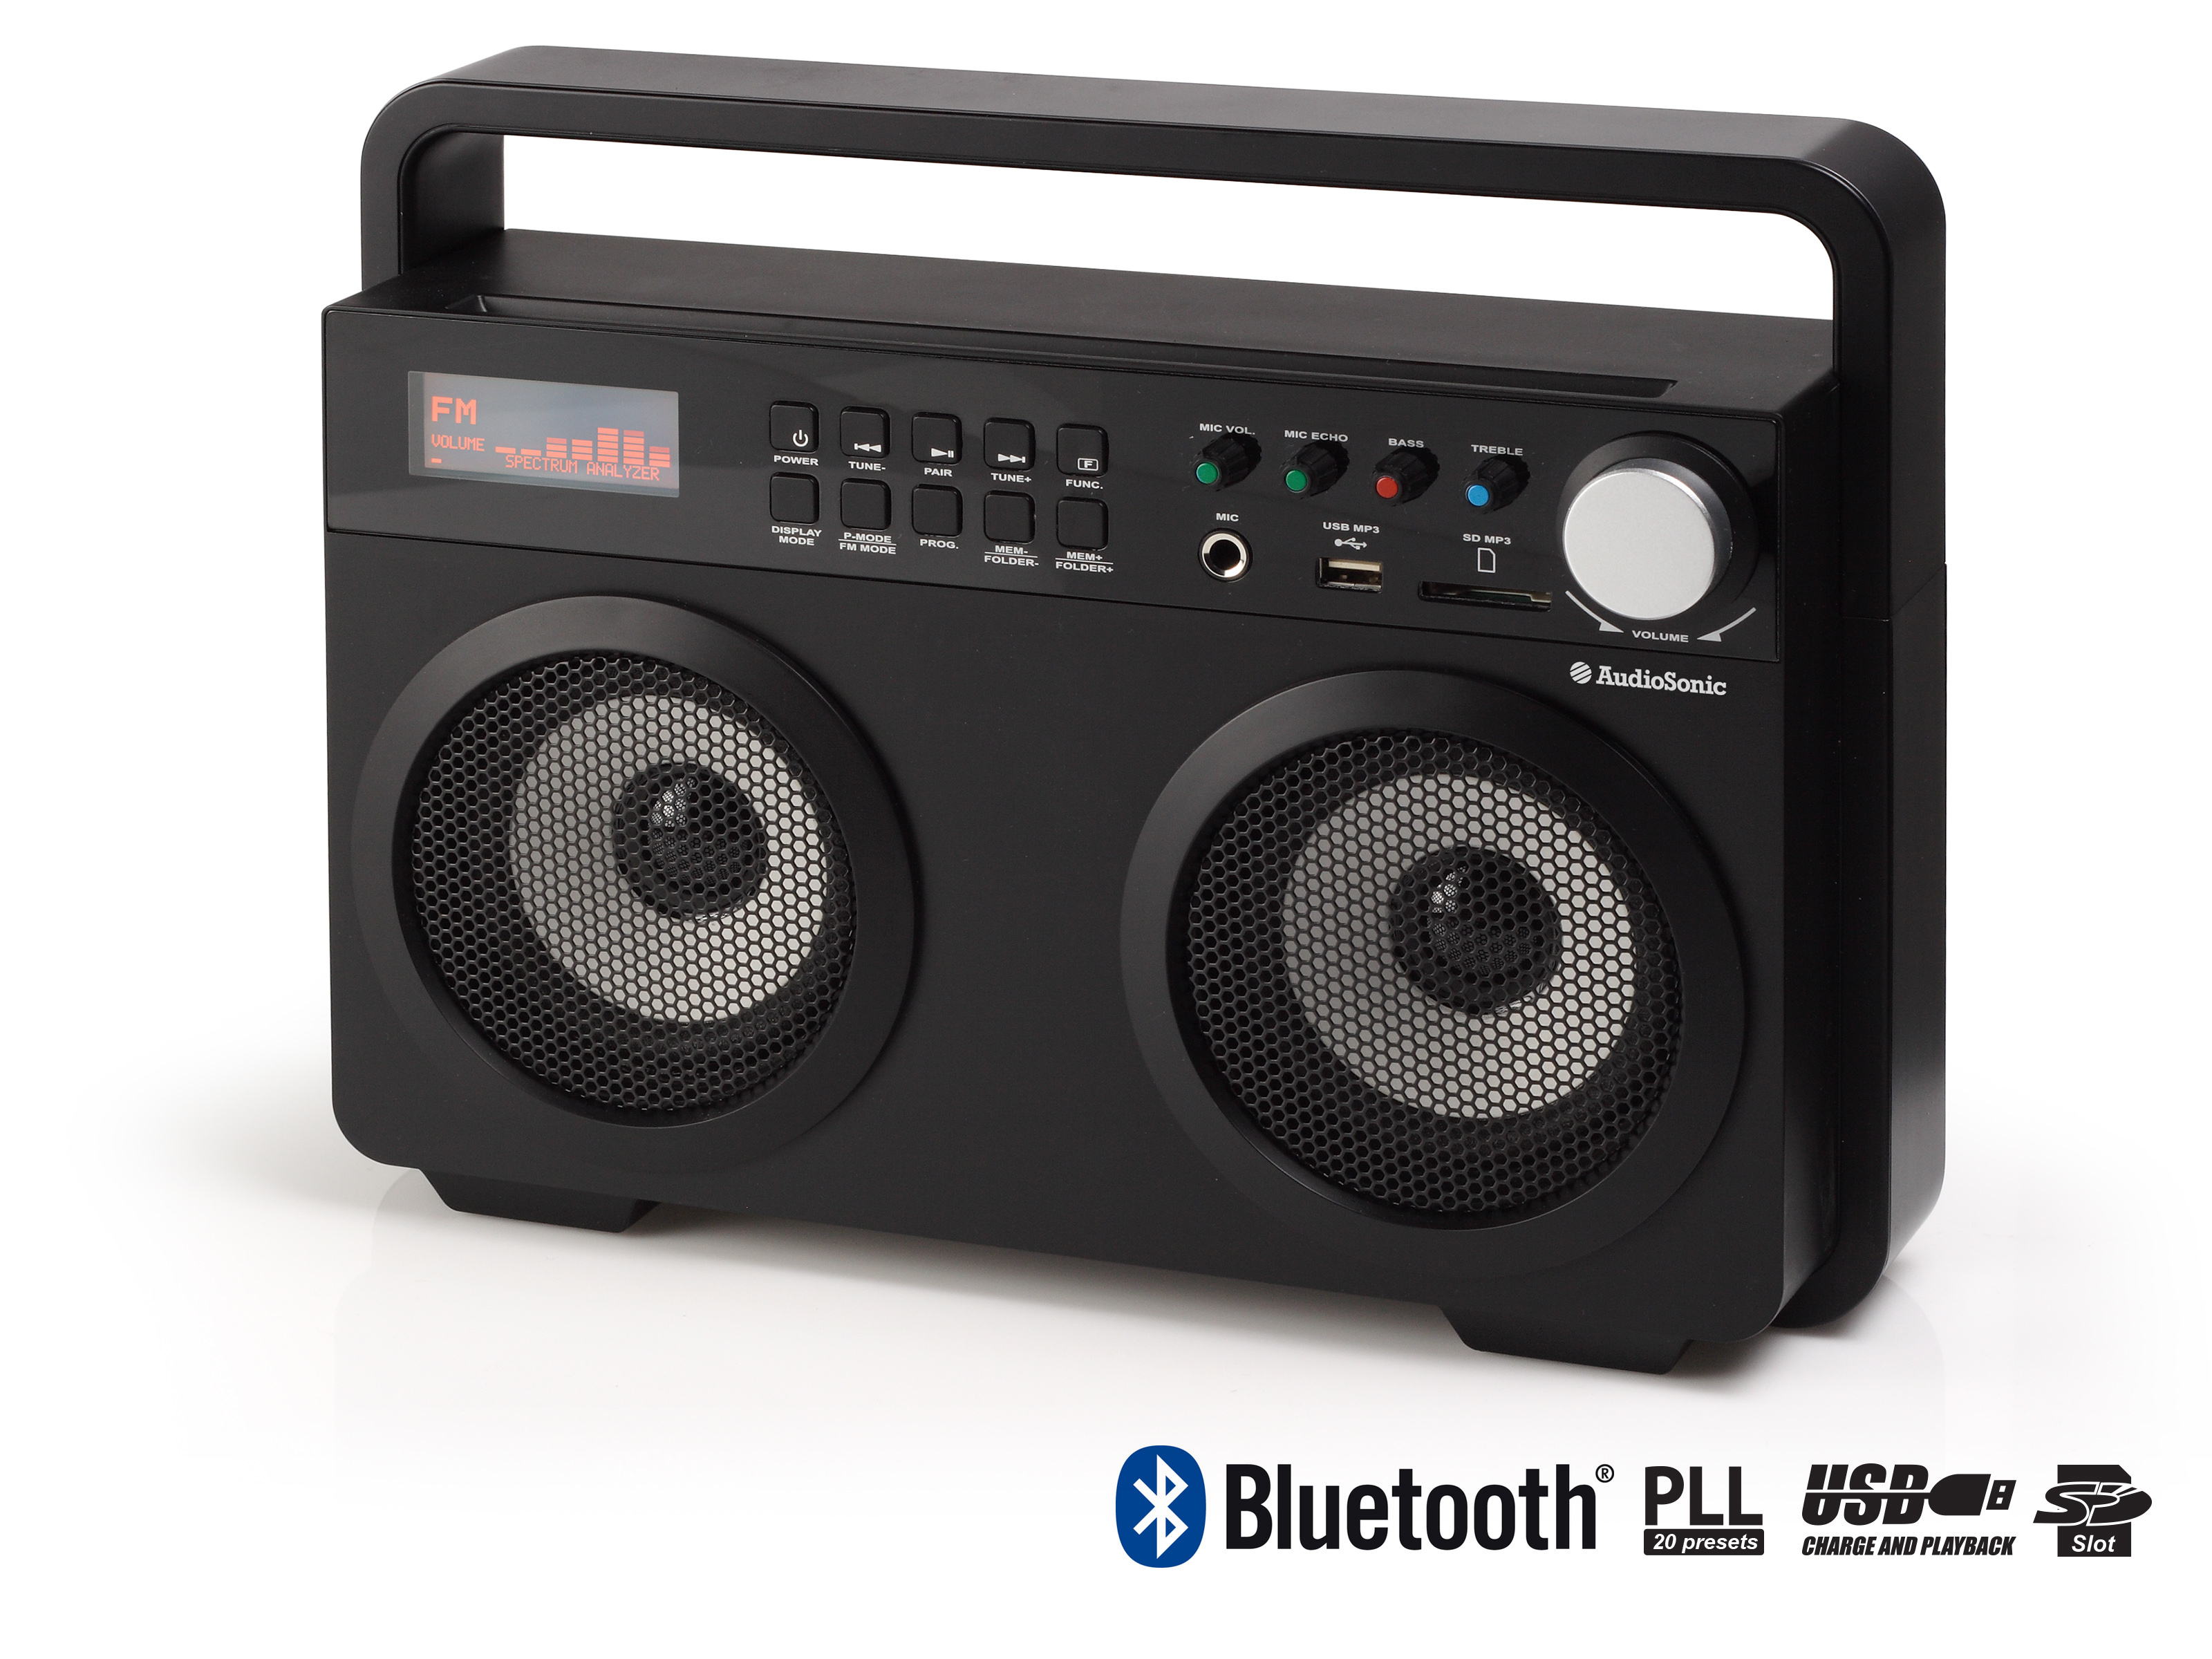 AudioSonic RD-1557 Portatile Nero radio